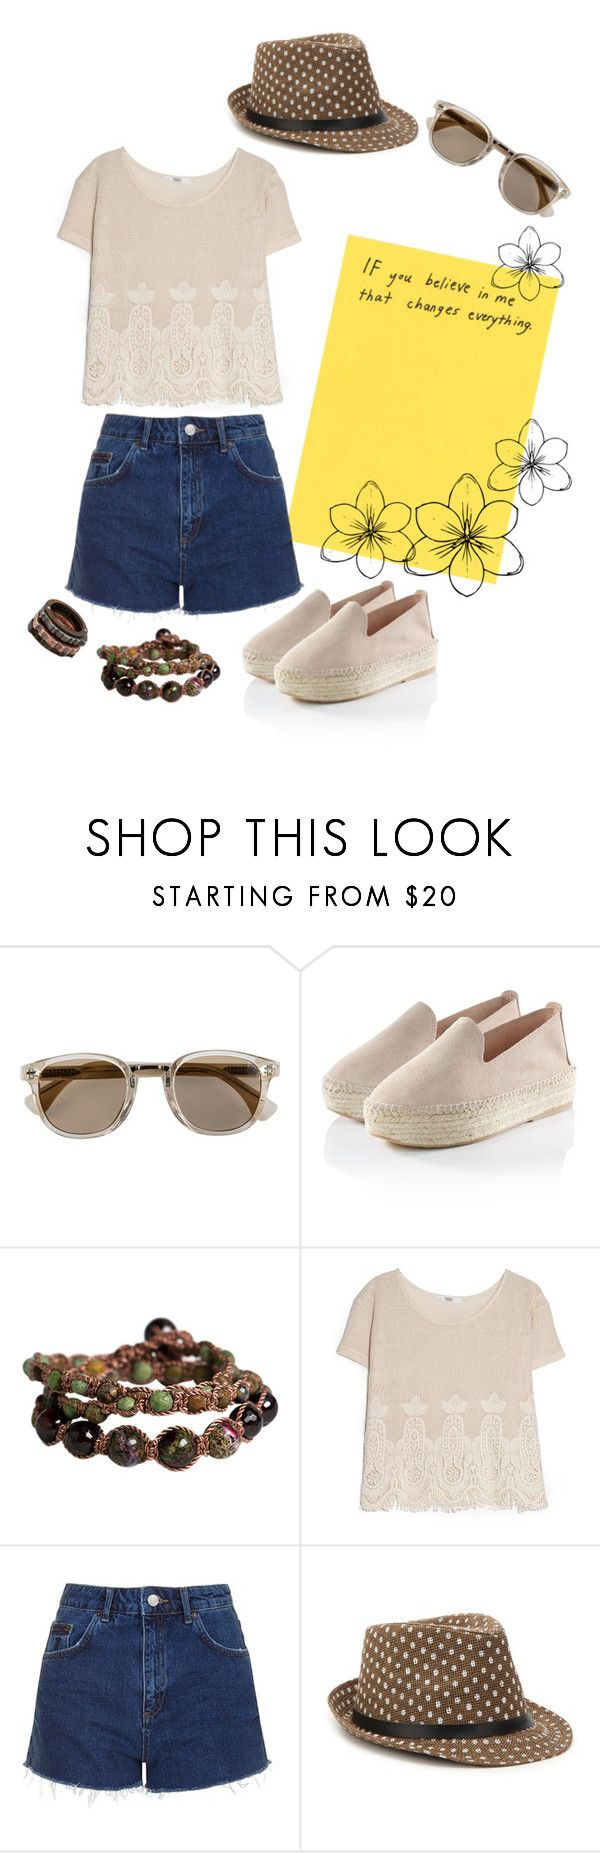 """""""Untitled #191"""" by nika-hp ❤ liked on Polyvore featuring Soul Journey Jewelry, MANGO, Topshop, Mix No. 6 and Bottega Veneta"""